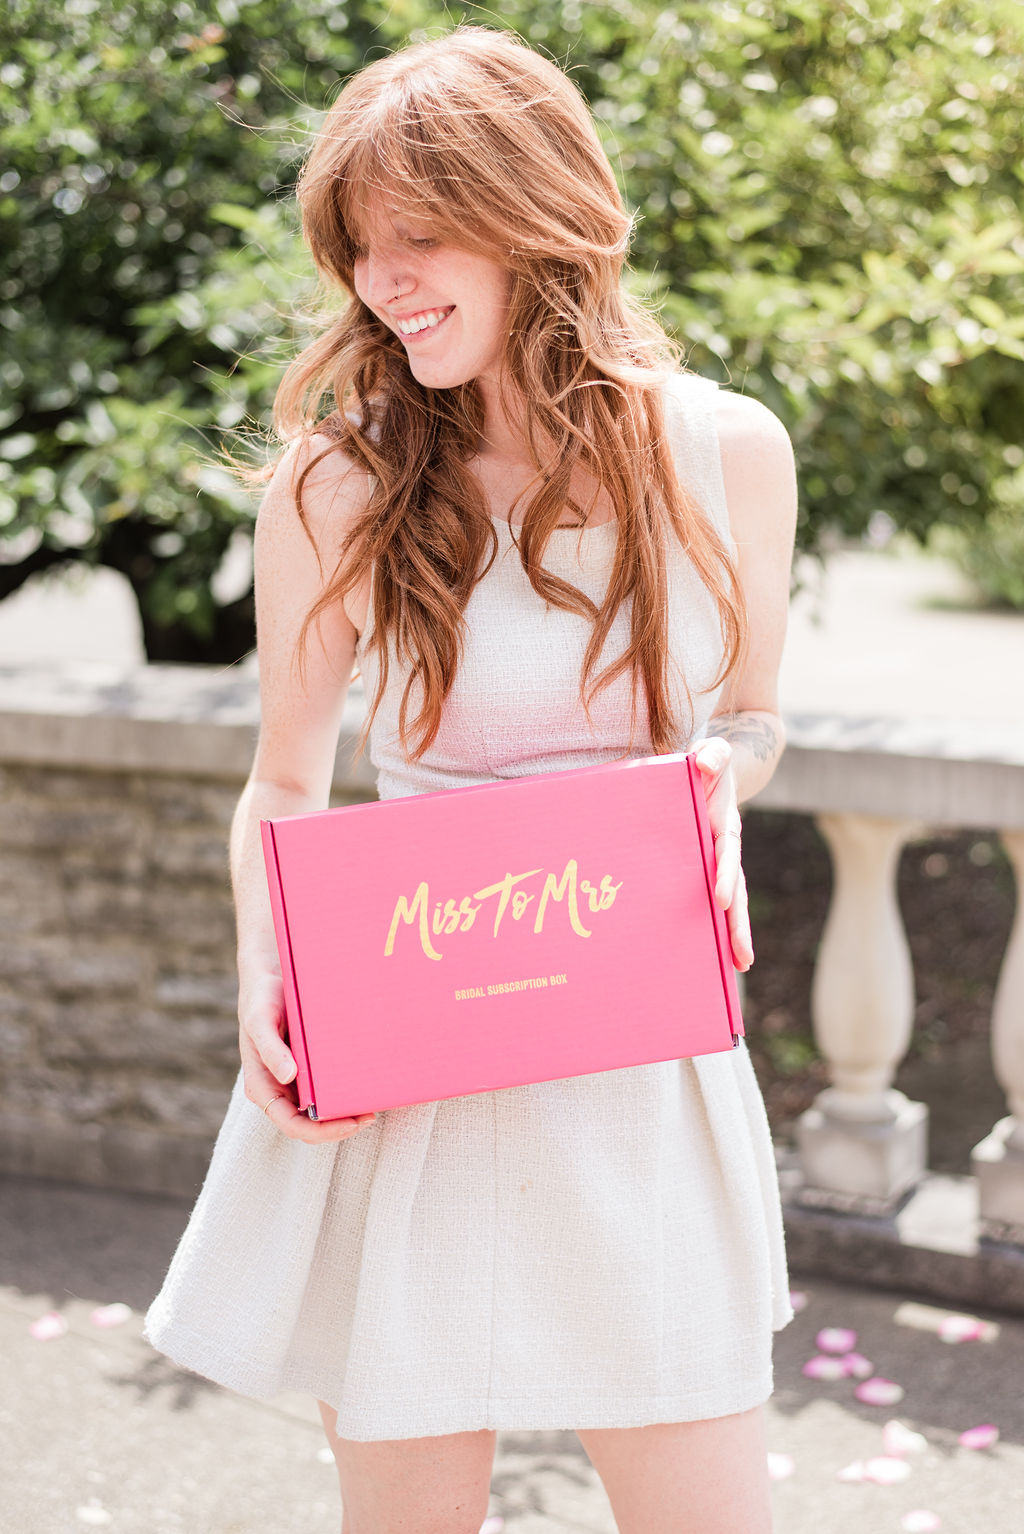 """[Image description: a woman in a dress holding a pink box that says """"Miss to Mrs] Via MissToMrsBrideBox"""